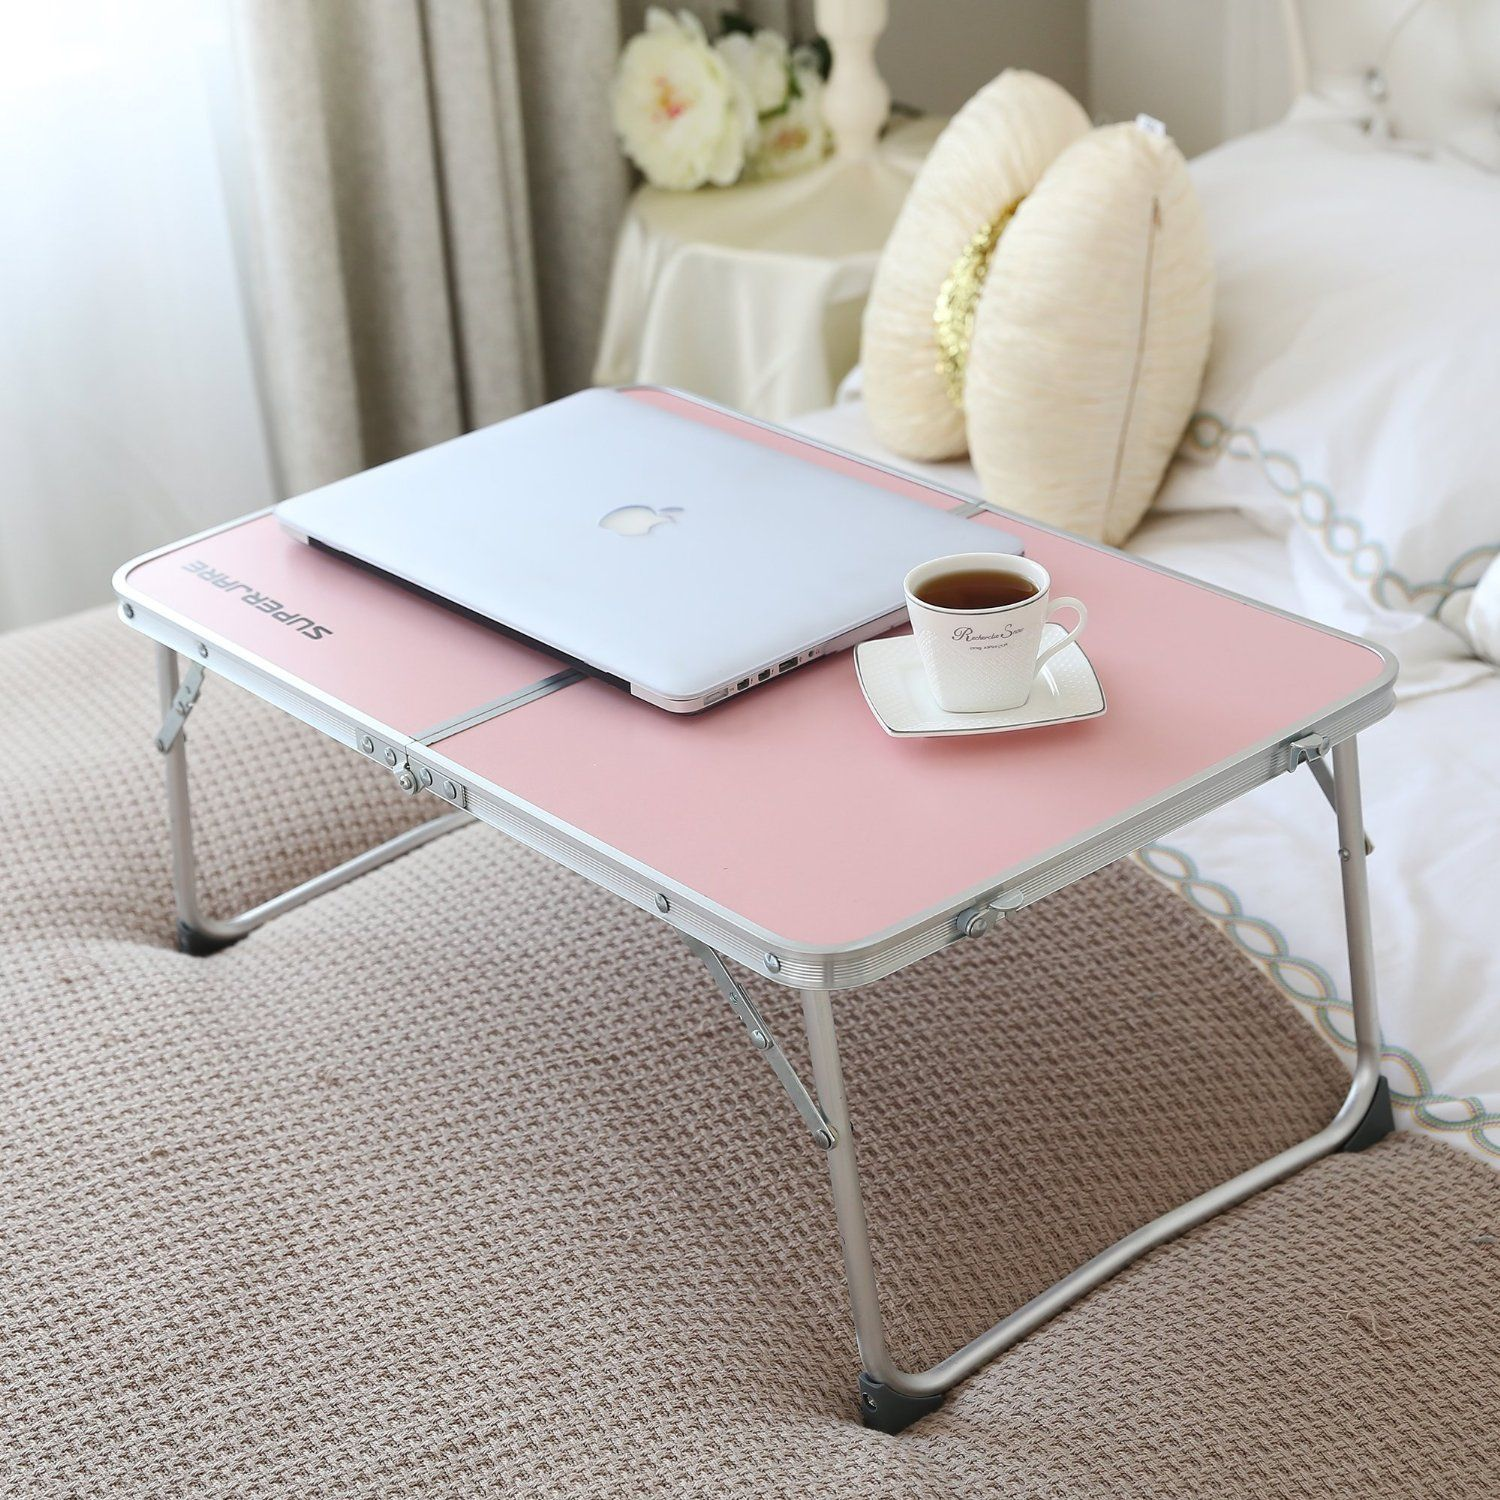 #USUMoveIn : Superjare Folding Laptop Desk Portable Table Breakfast Bed Tray  Pink 70901P : Office